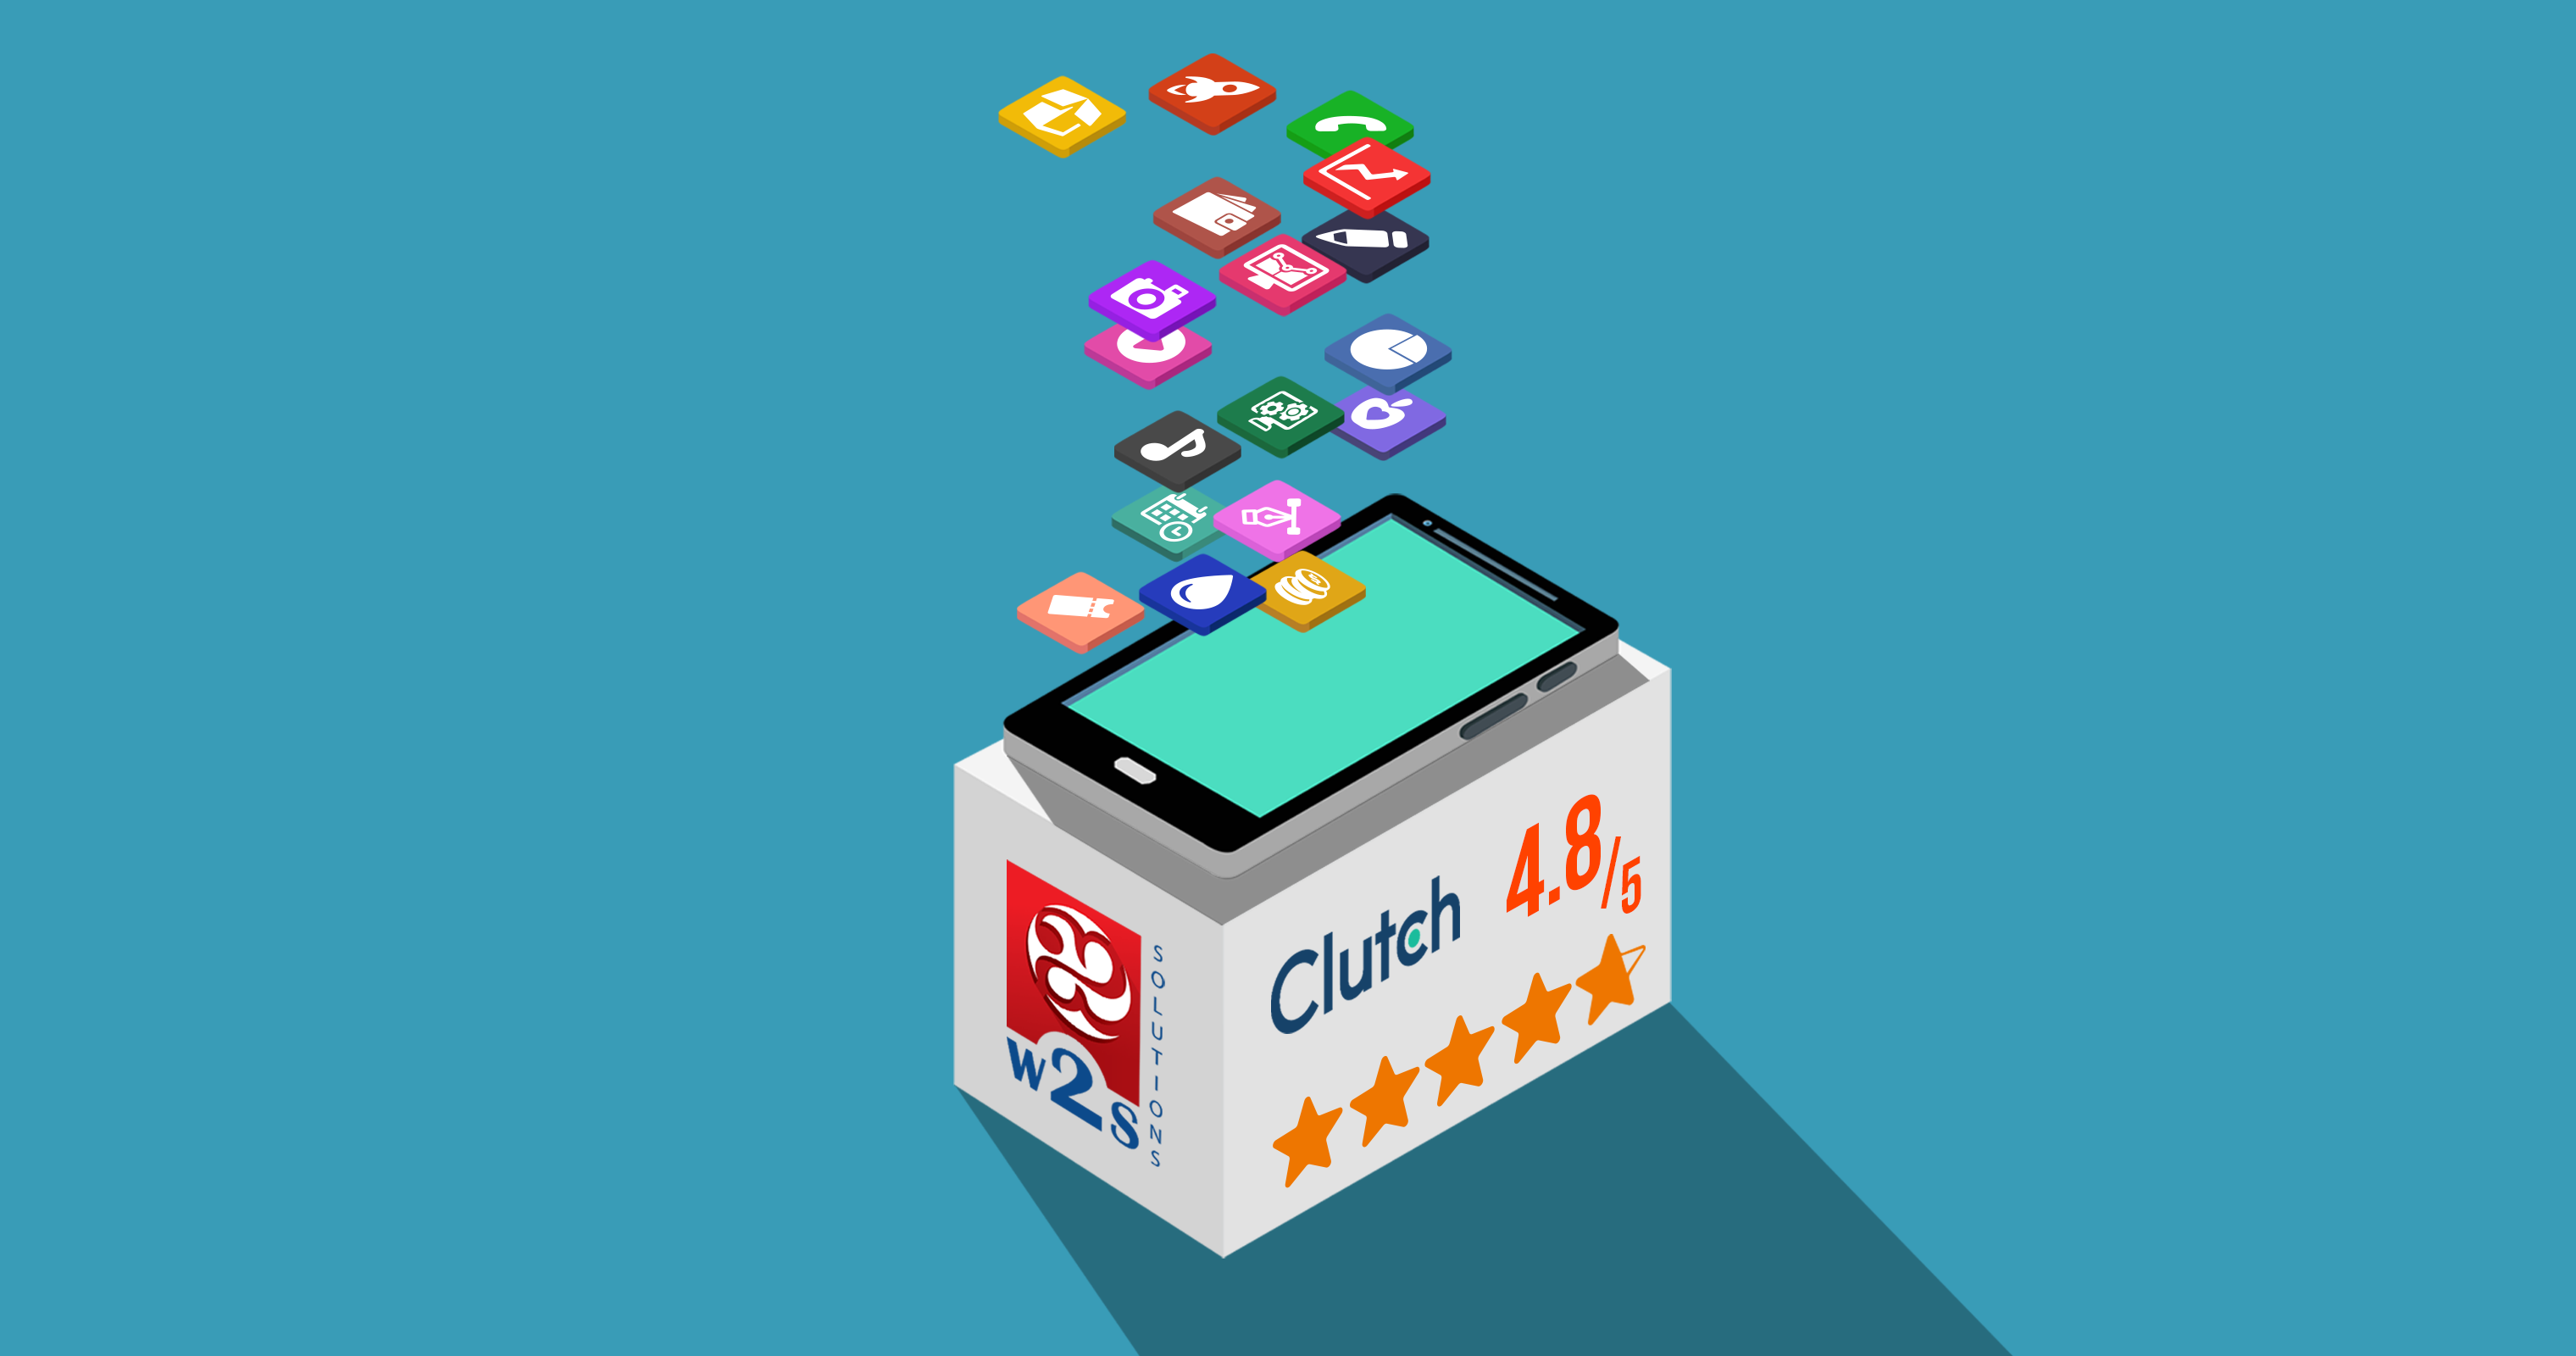 w2s mobile application Clutch review 4.8/5